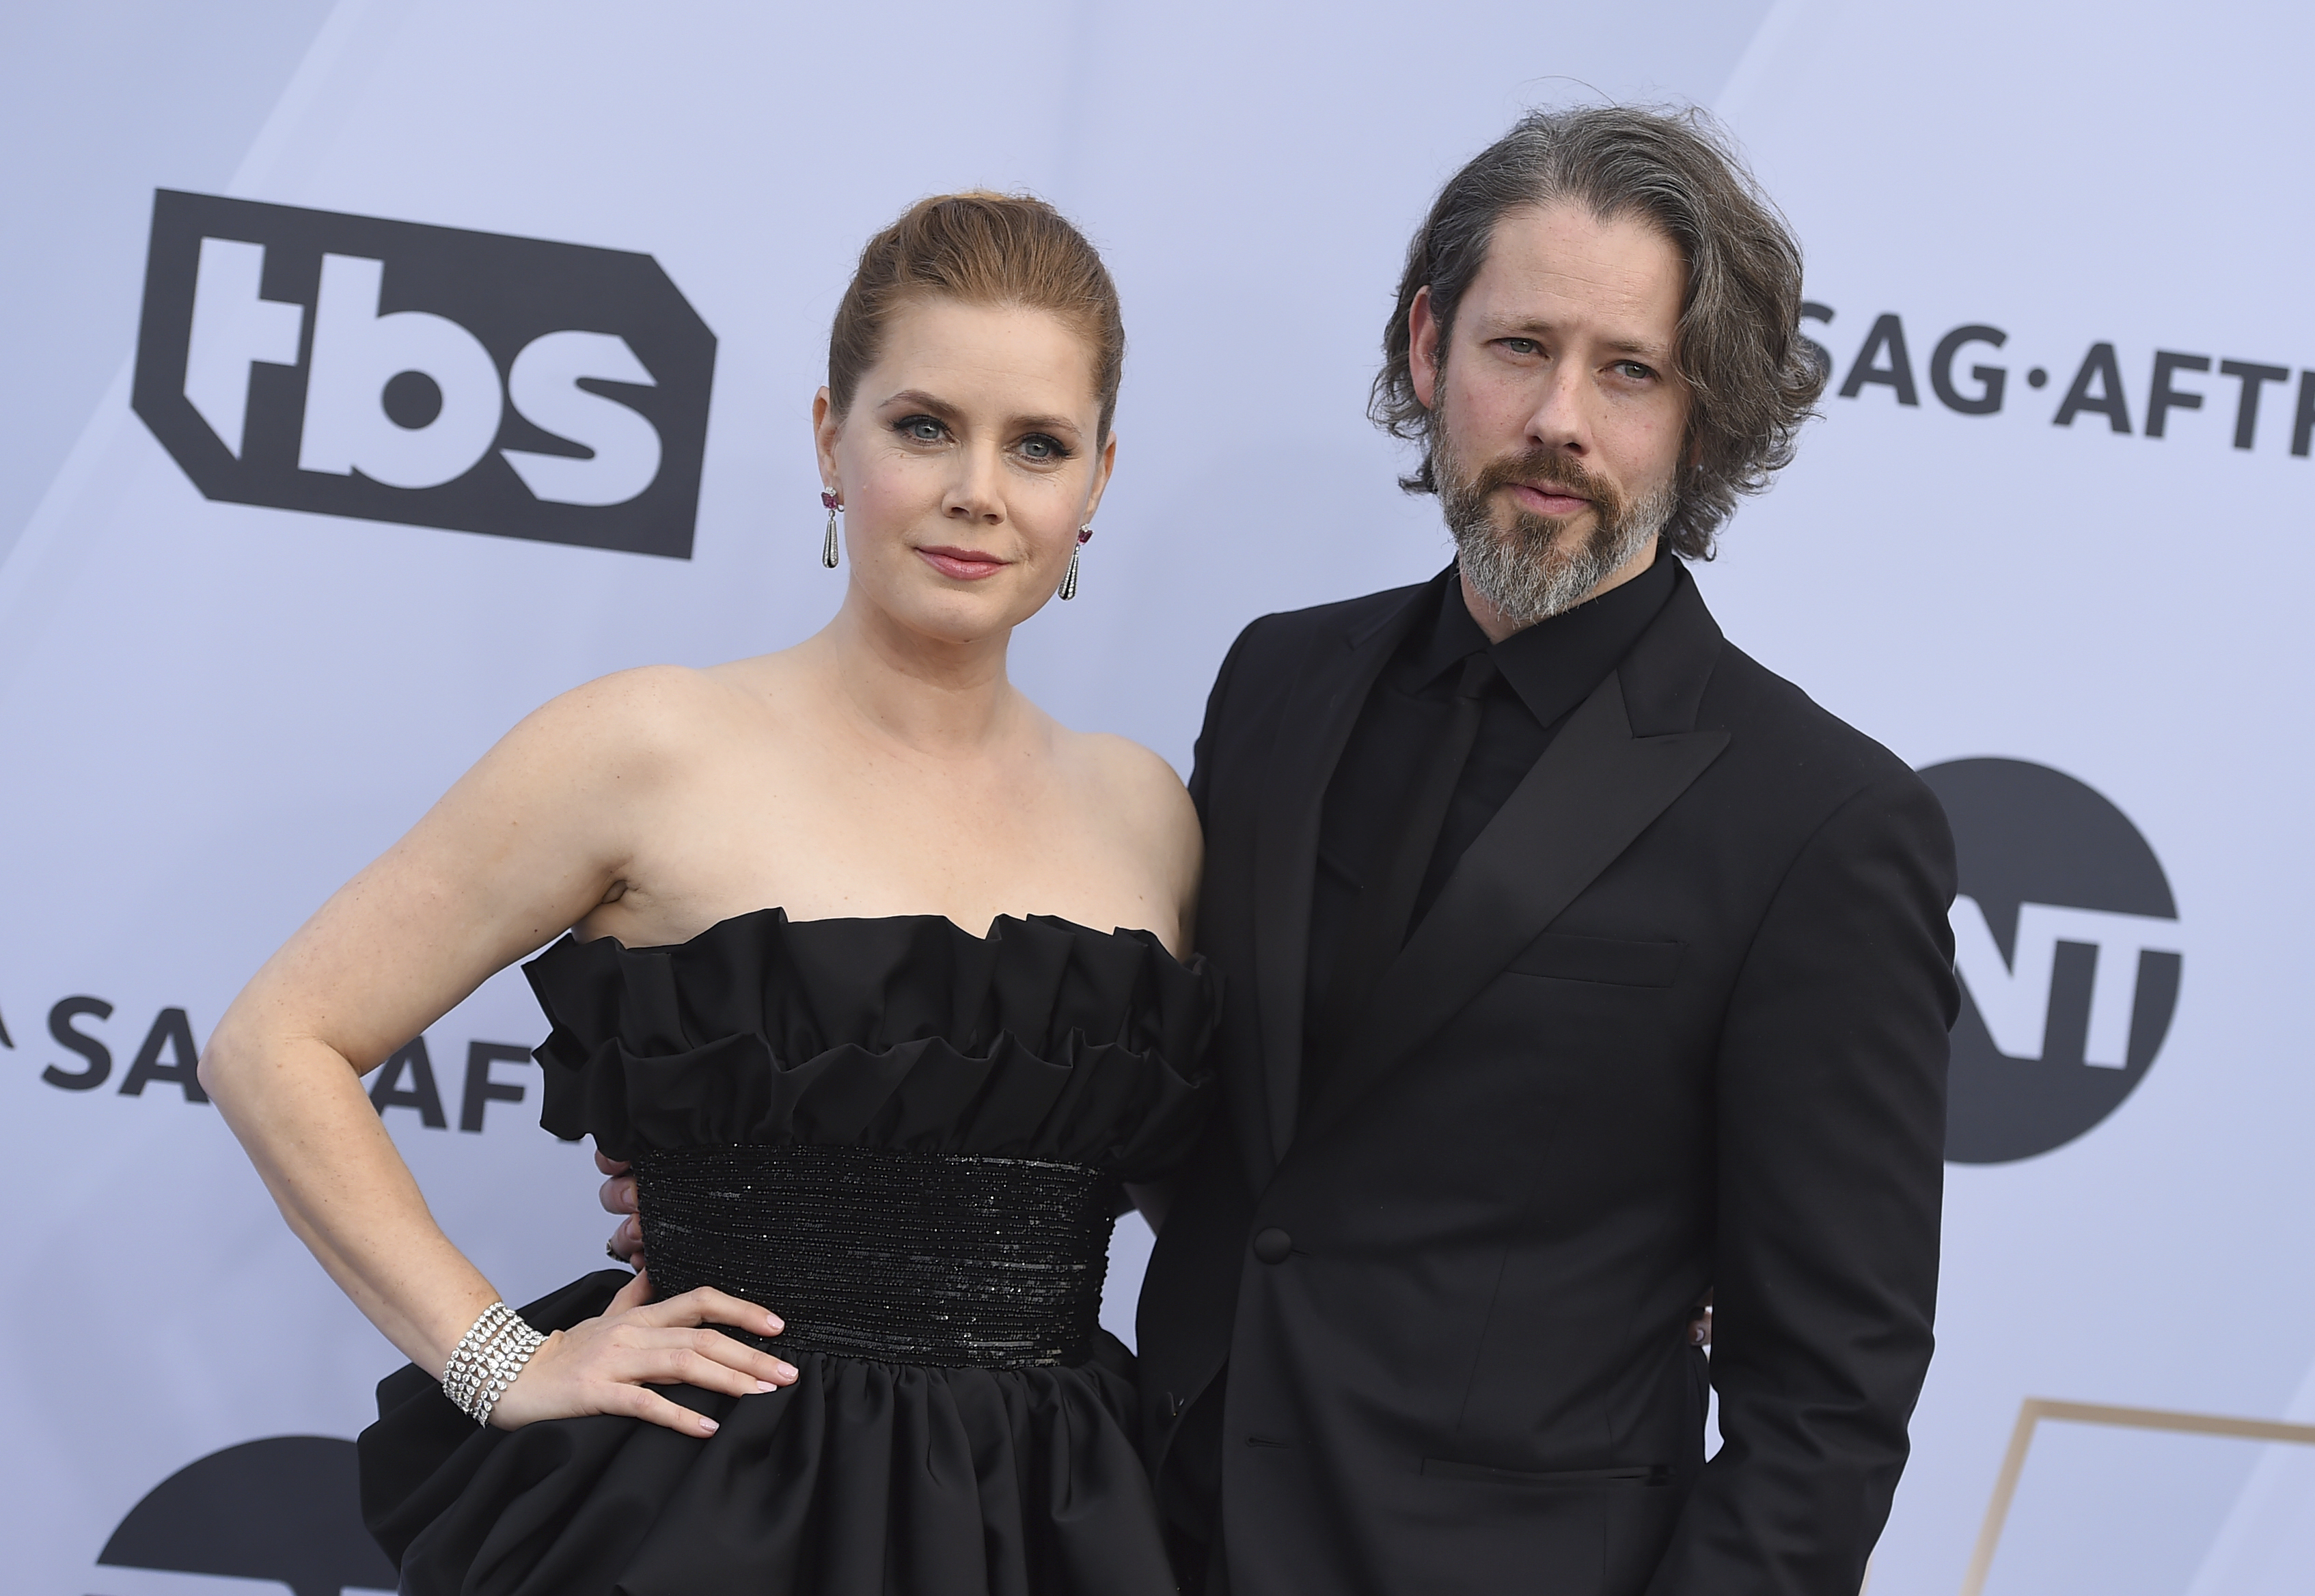 Amy Adams, left, and Darren Le Gallo arrive at the 25th annual Screen Actors Guild Awards at the Shrine Auditorium & Expo Hall on Sunday, Jan. 27, 2019, in Los Angeles. (Photo by Jordan Strauss/Invision/AP)